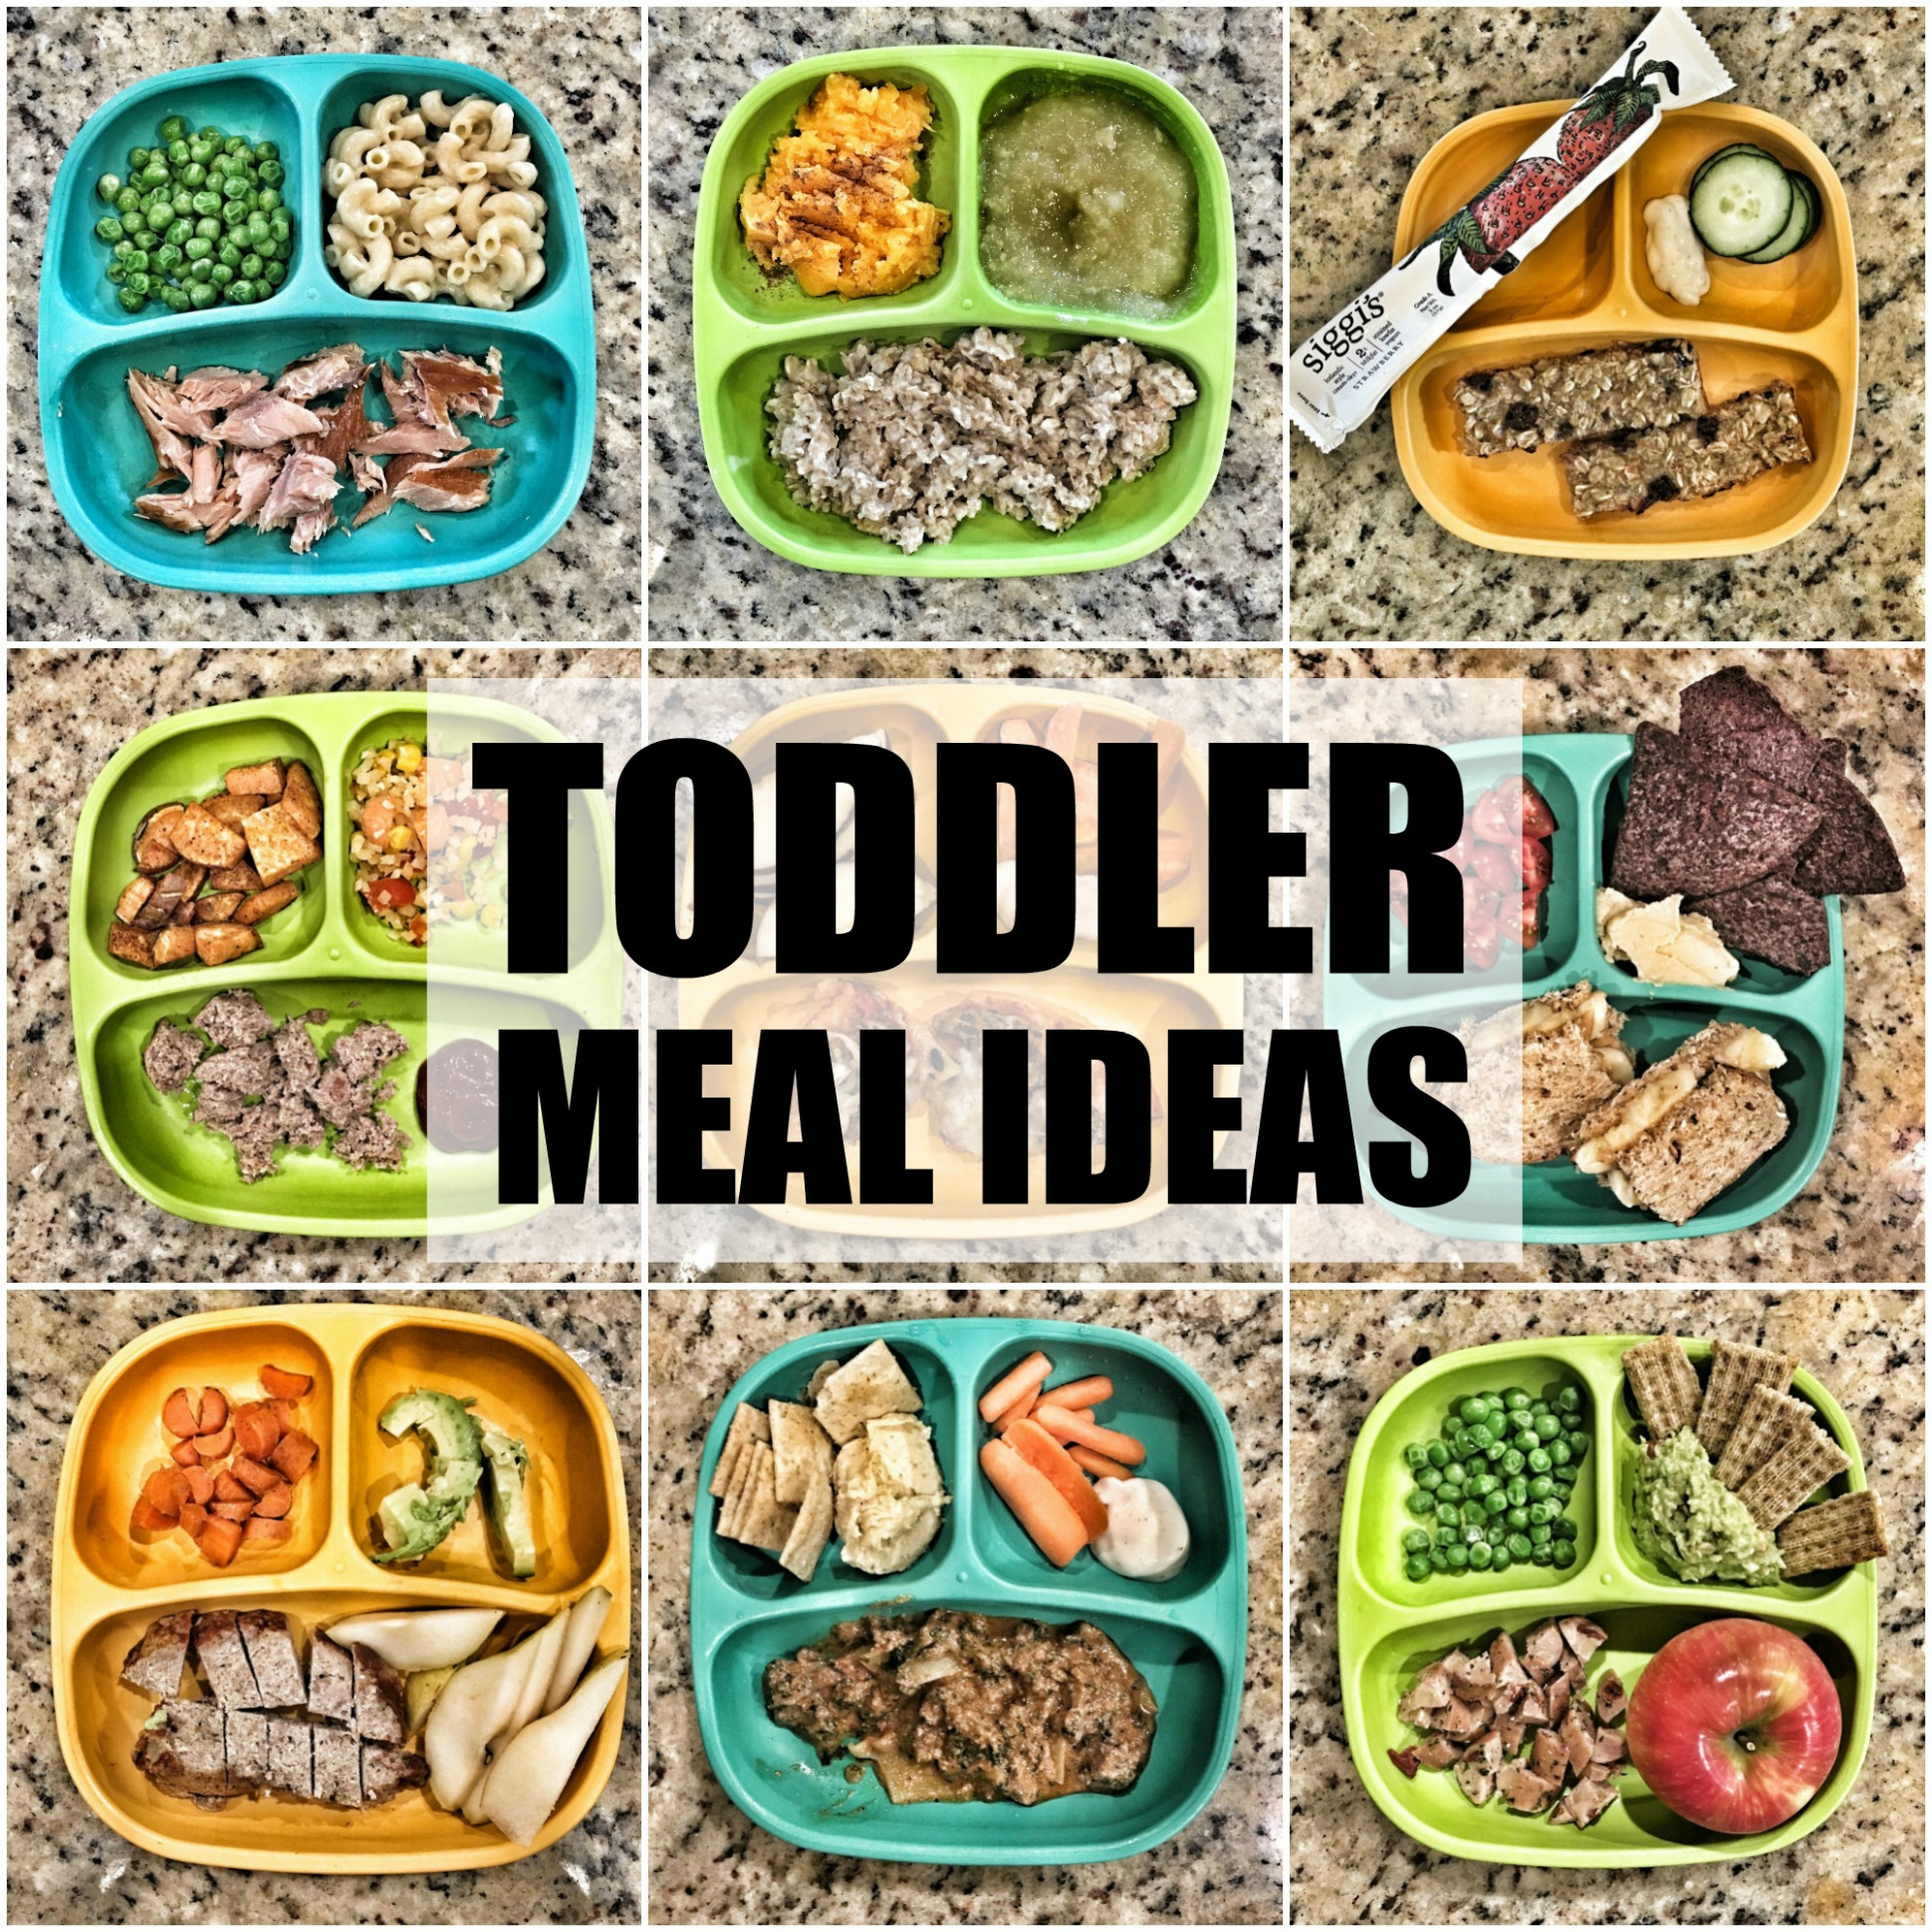 15+ Quick Toddler Meal Ideas - Toddler Recipes Dinner